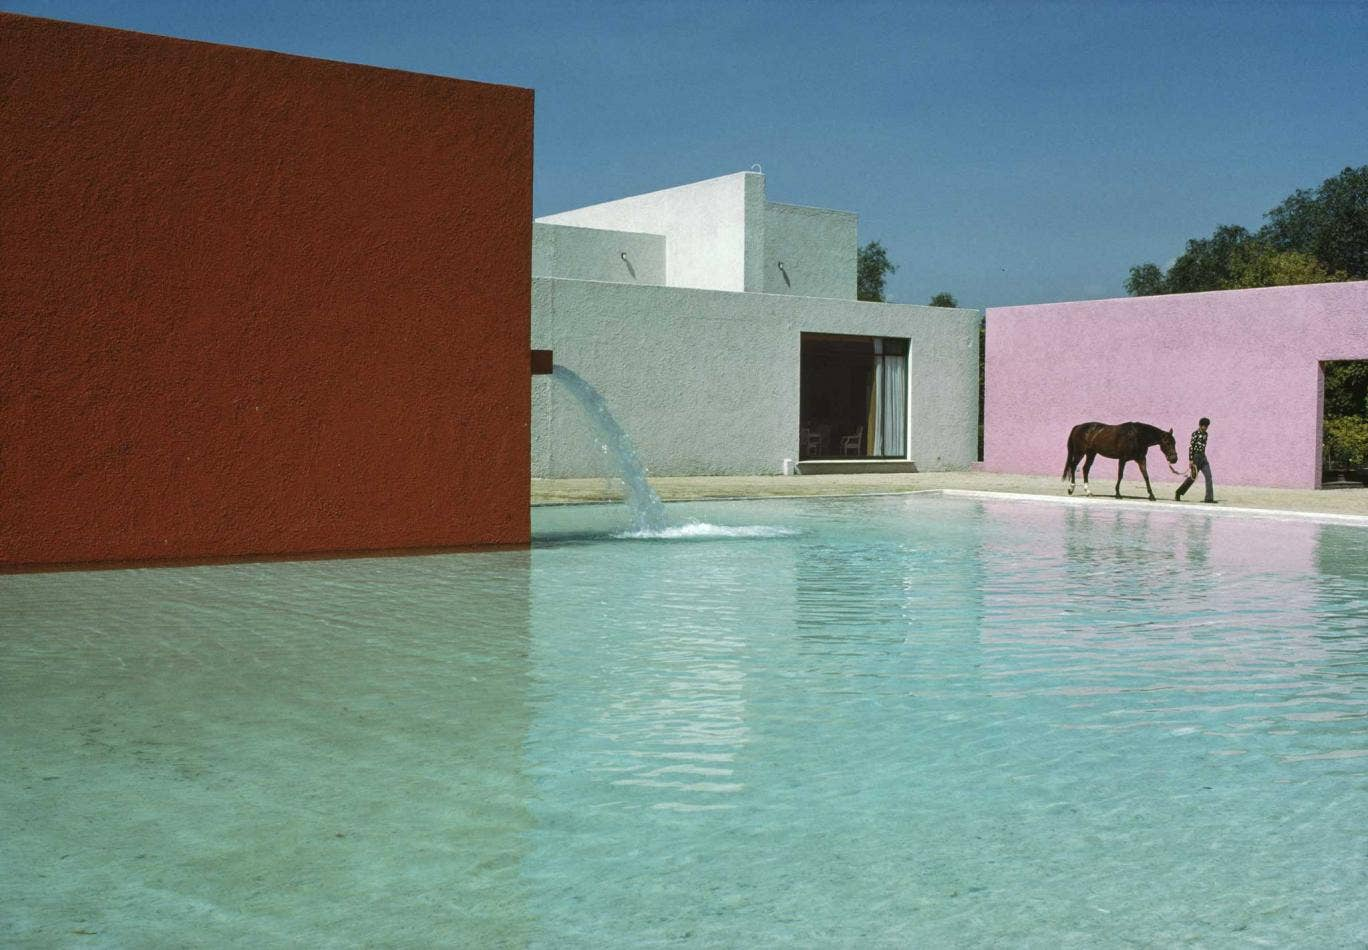 This 1976 shot of Mexico's San Cristobal stables has a formalist beauty to match anything in two shades